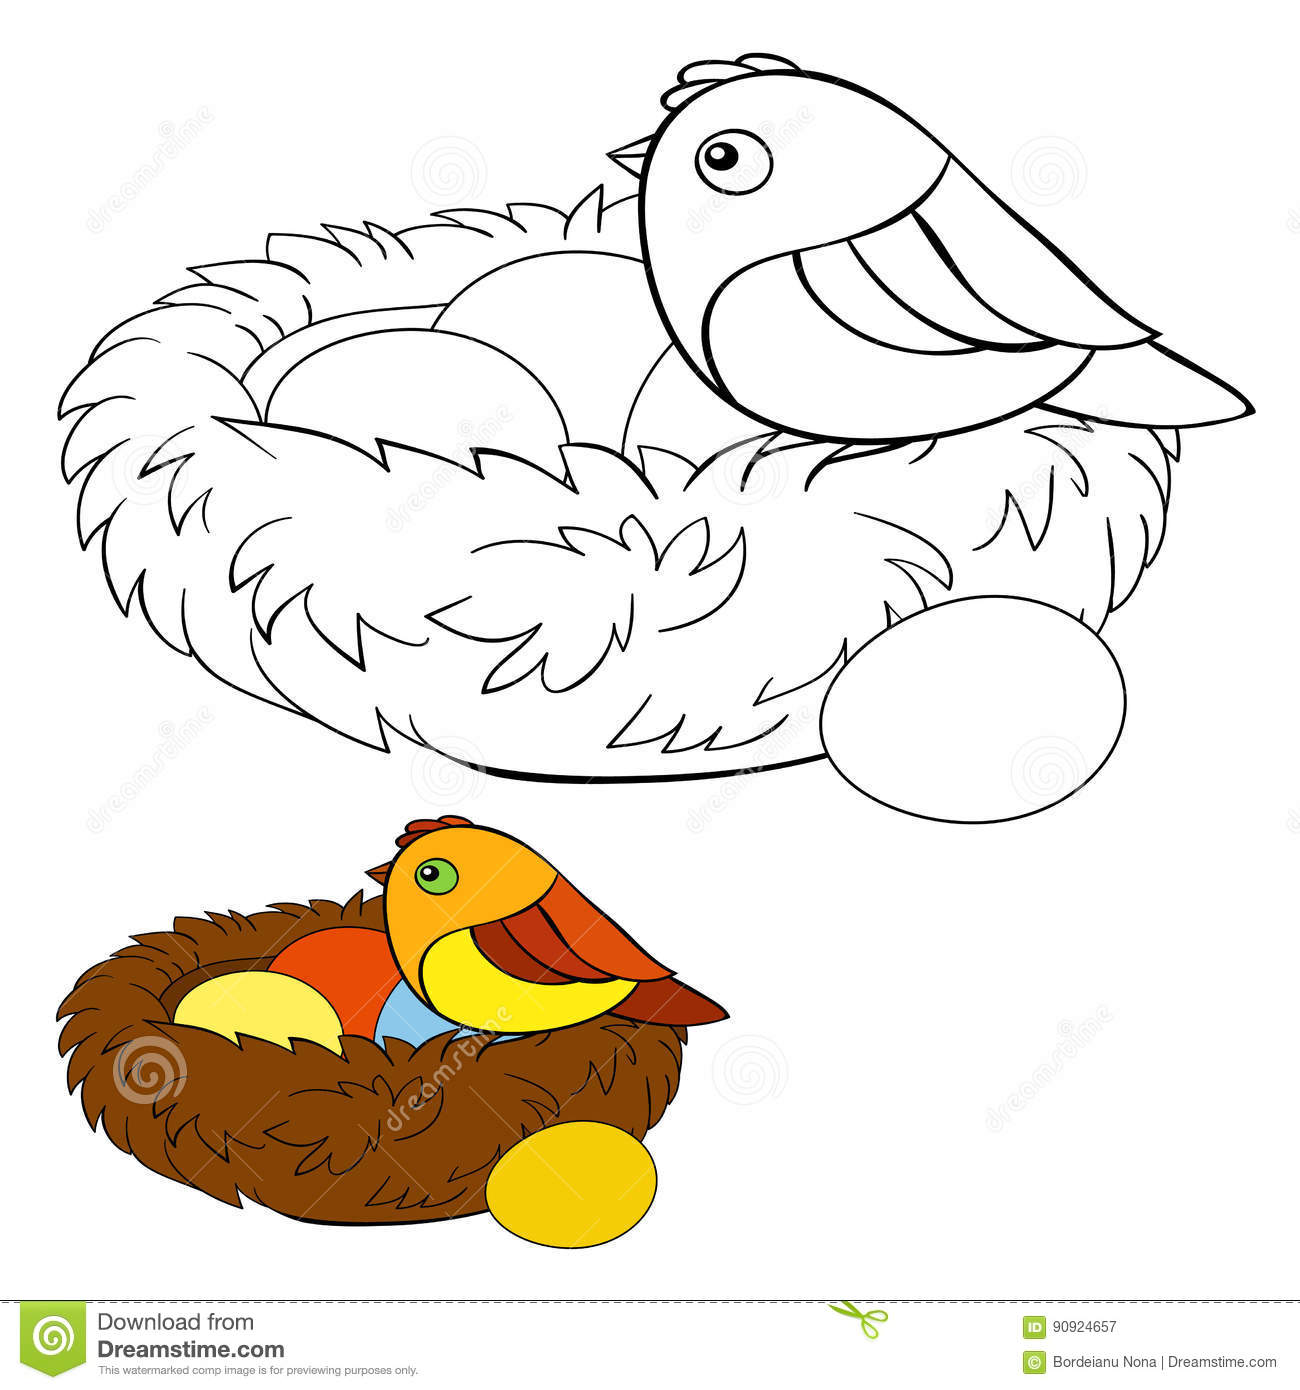 Children Coloring Page Bird Stock Vector - Illustration of wall ...